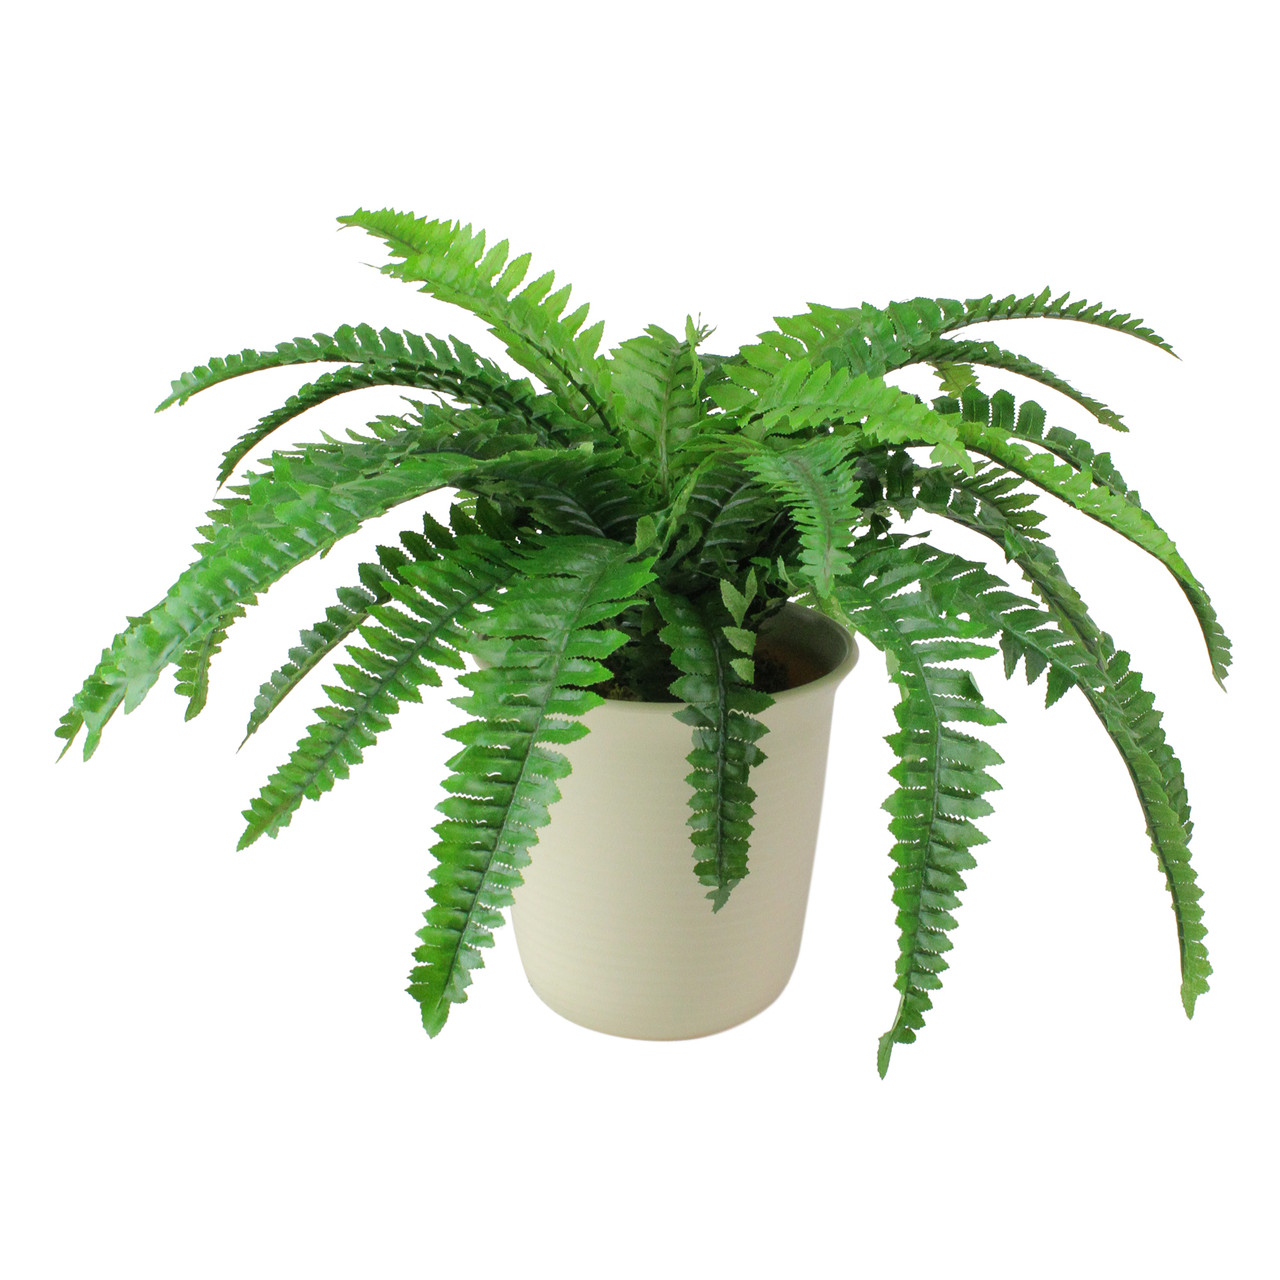 21 Green Cream White Boston Fern Artificial Potted Plant Christmas Central